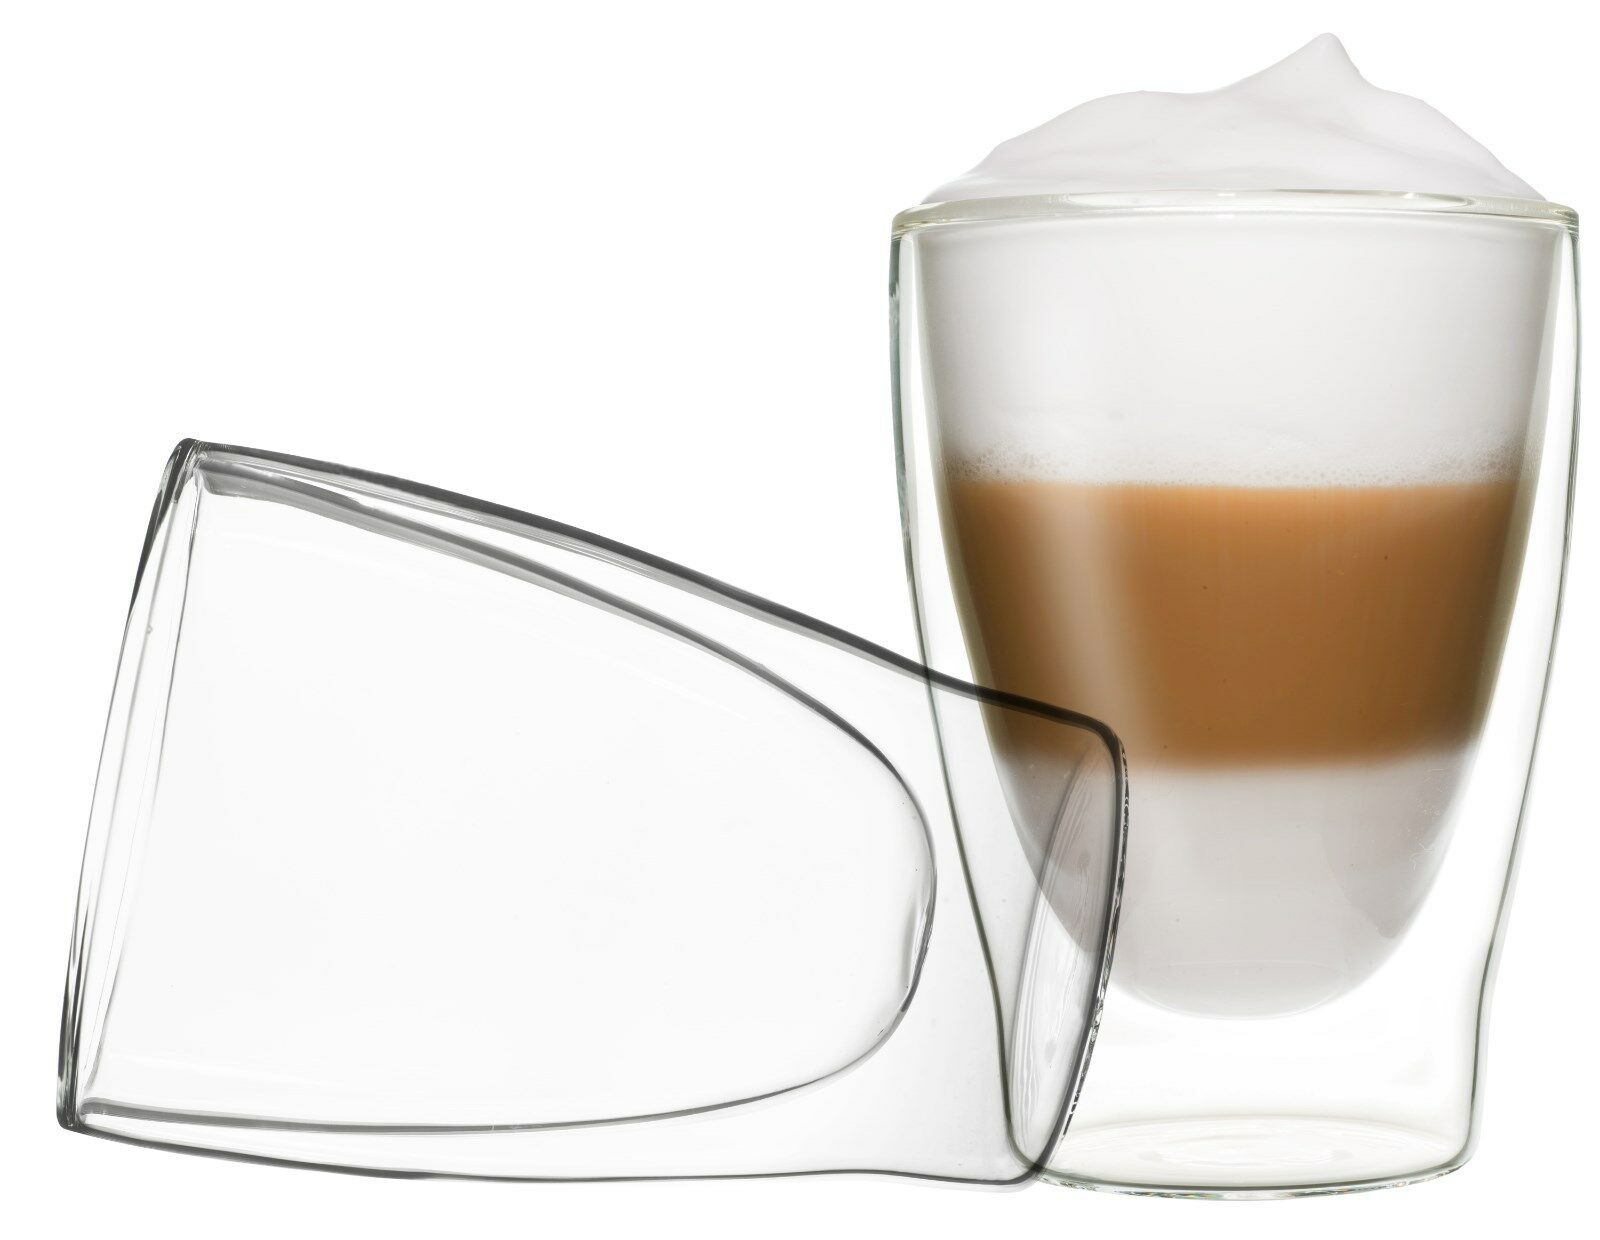 2x 310ML DUOS THERMOGLÄSER DOPPELWANDIG LATTE MACCHIATO COCKTAIL EIS TEE